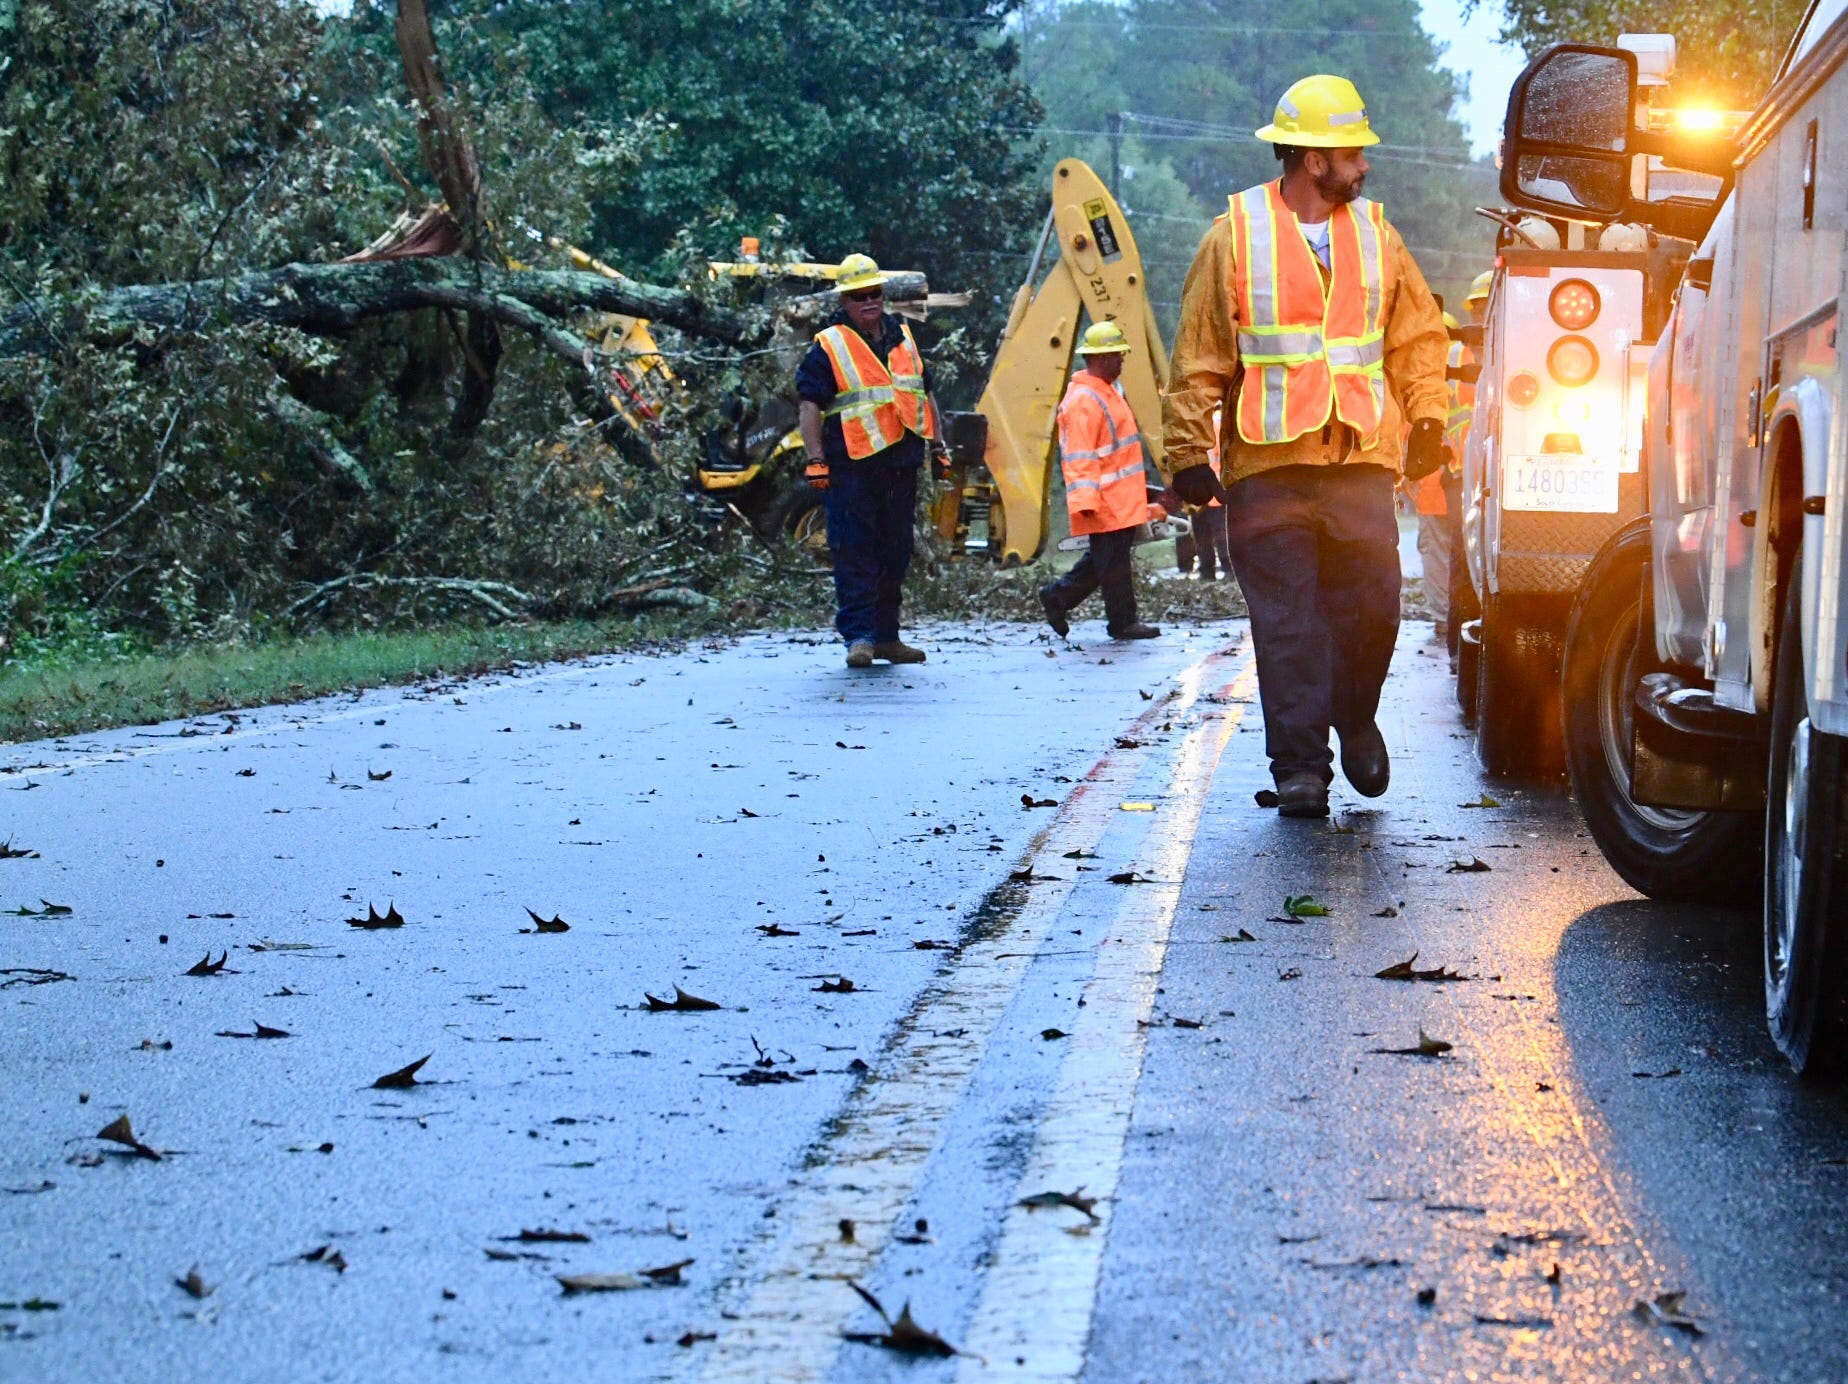 An SCDOT team works to clear Cherokee Road off South Carolina 81 on Thursday, Oct. 11, 2018, after heavy rain caused by Tropical Storm Michael triggered wind gusts and rain.